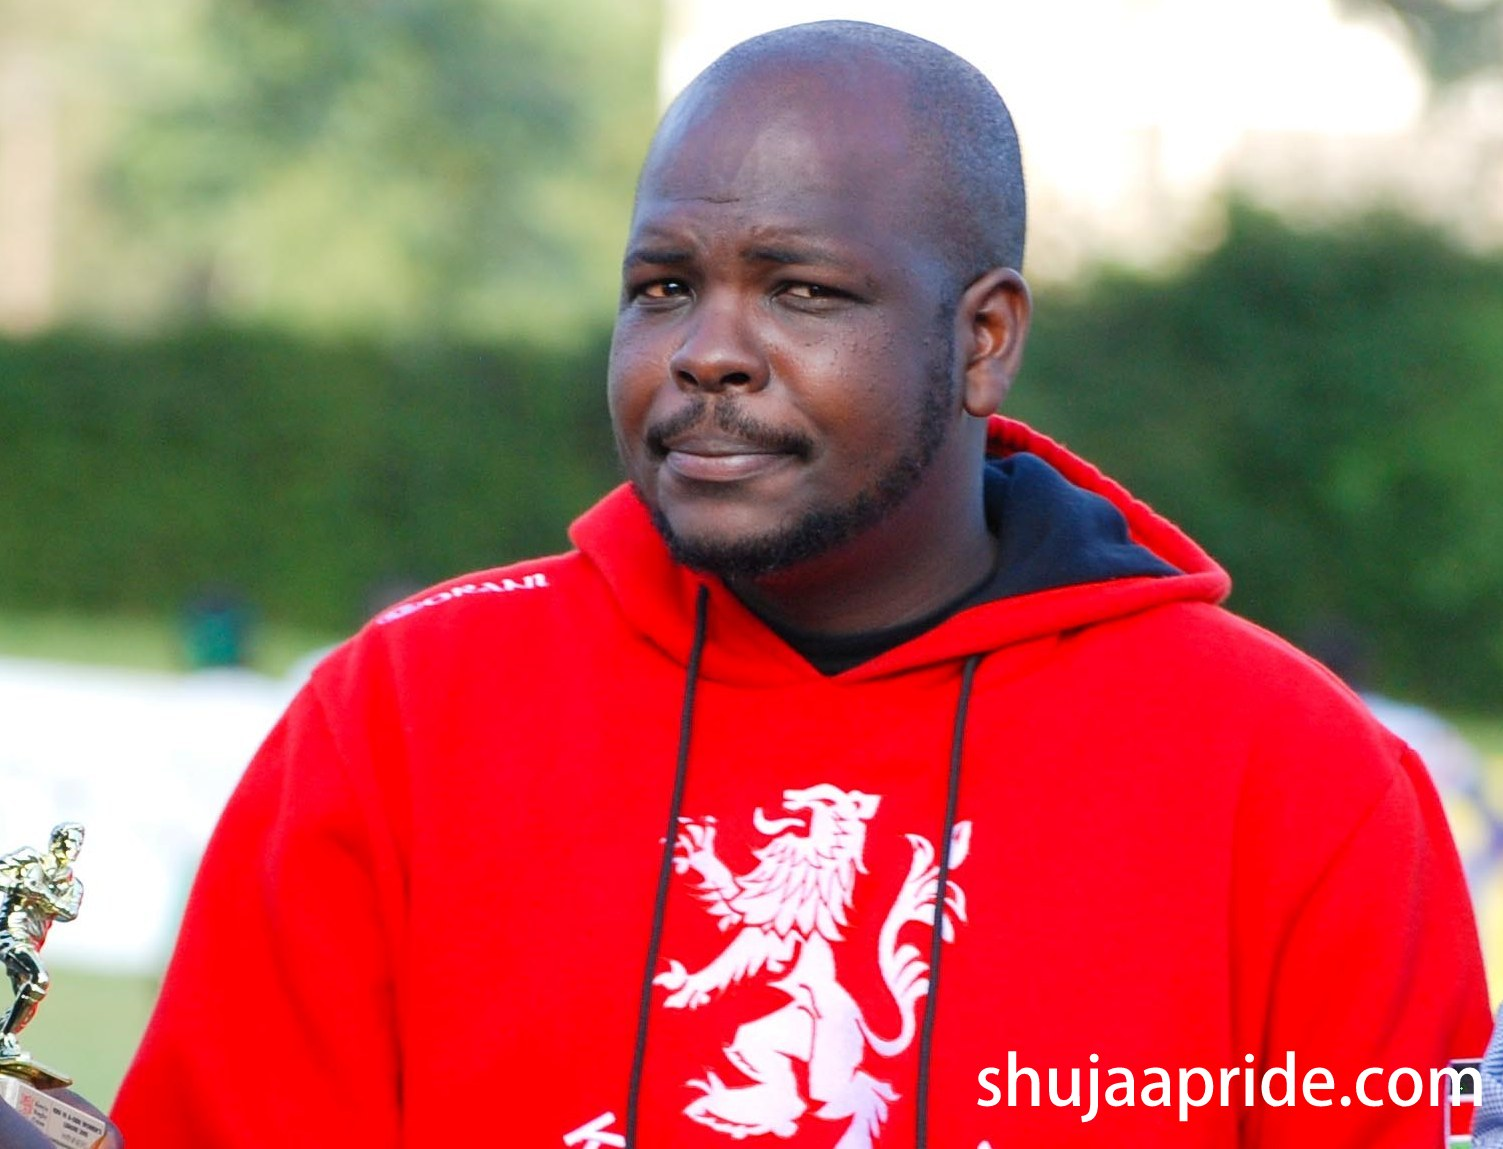 KRU Director Ian Mugambi shares his views on the upcoming safari 7s tournament